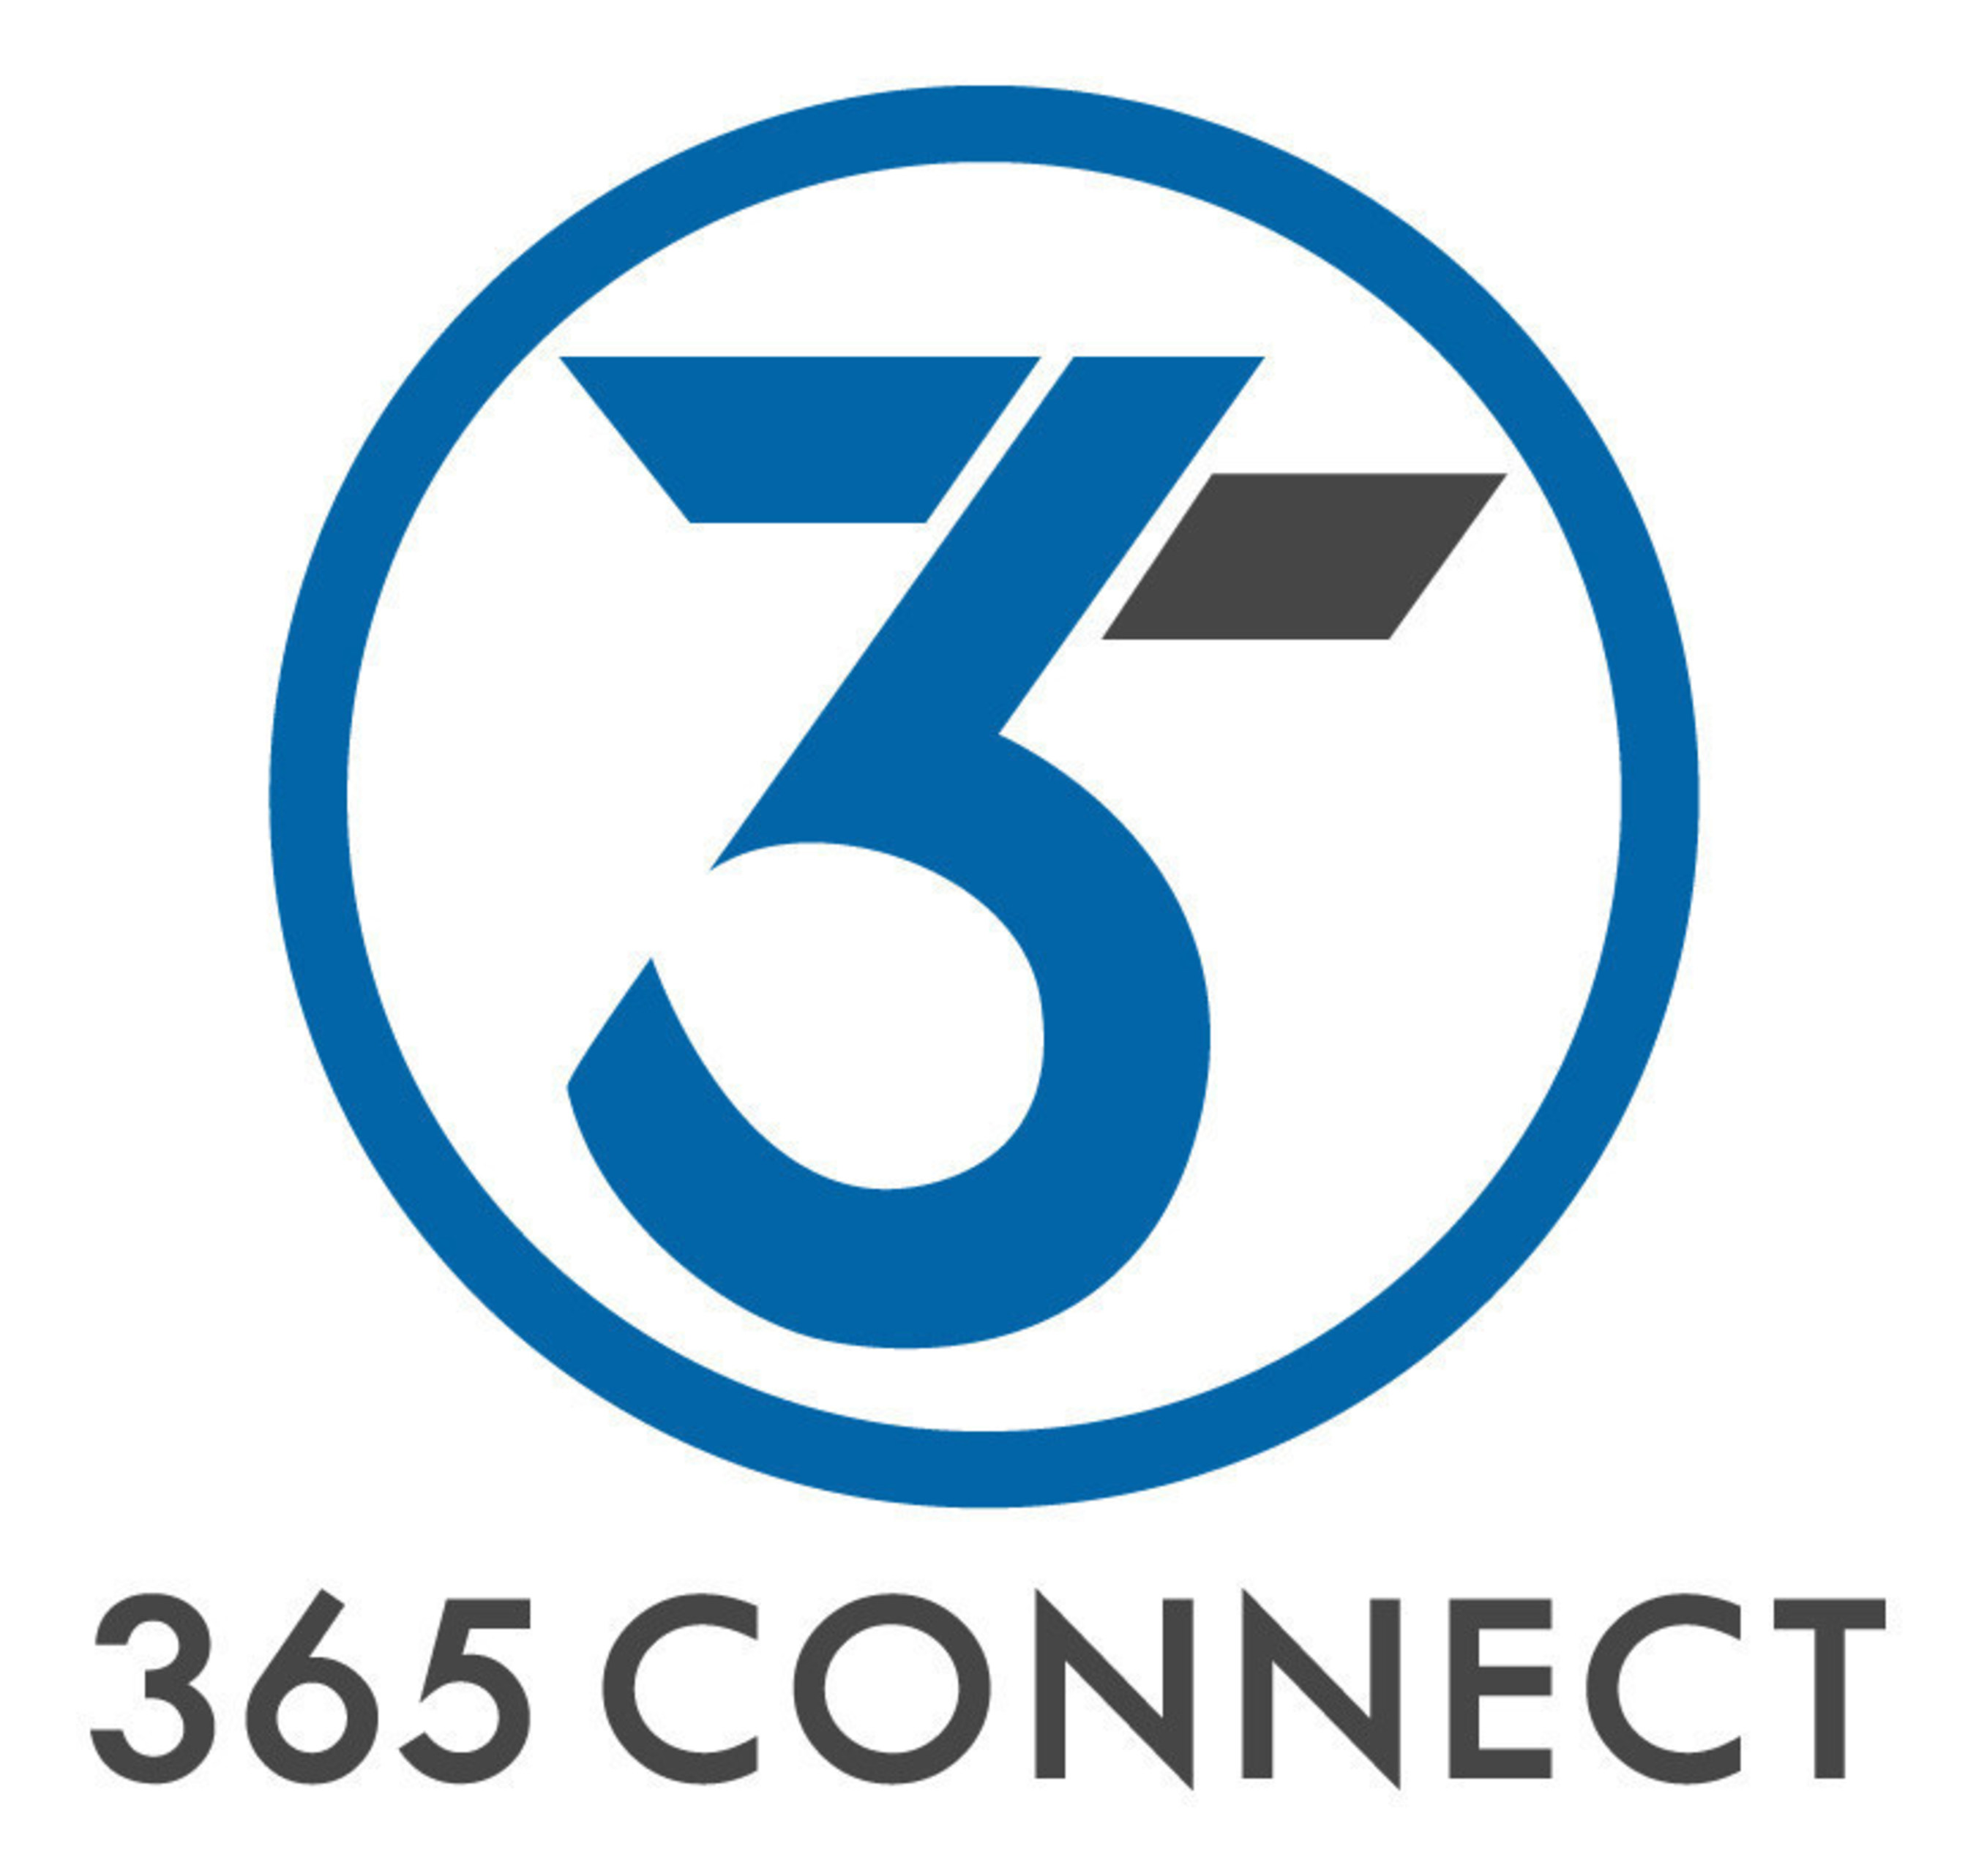 Multifamily Innovator 365 Connect Receives Summit Creative Awards for Its Marketing and Resident